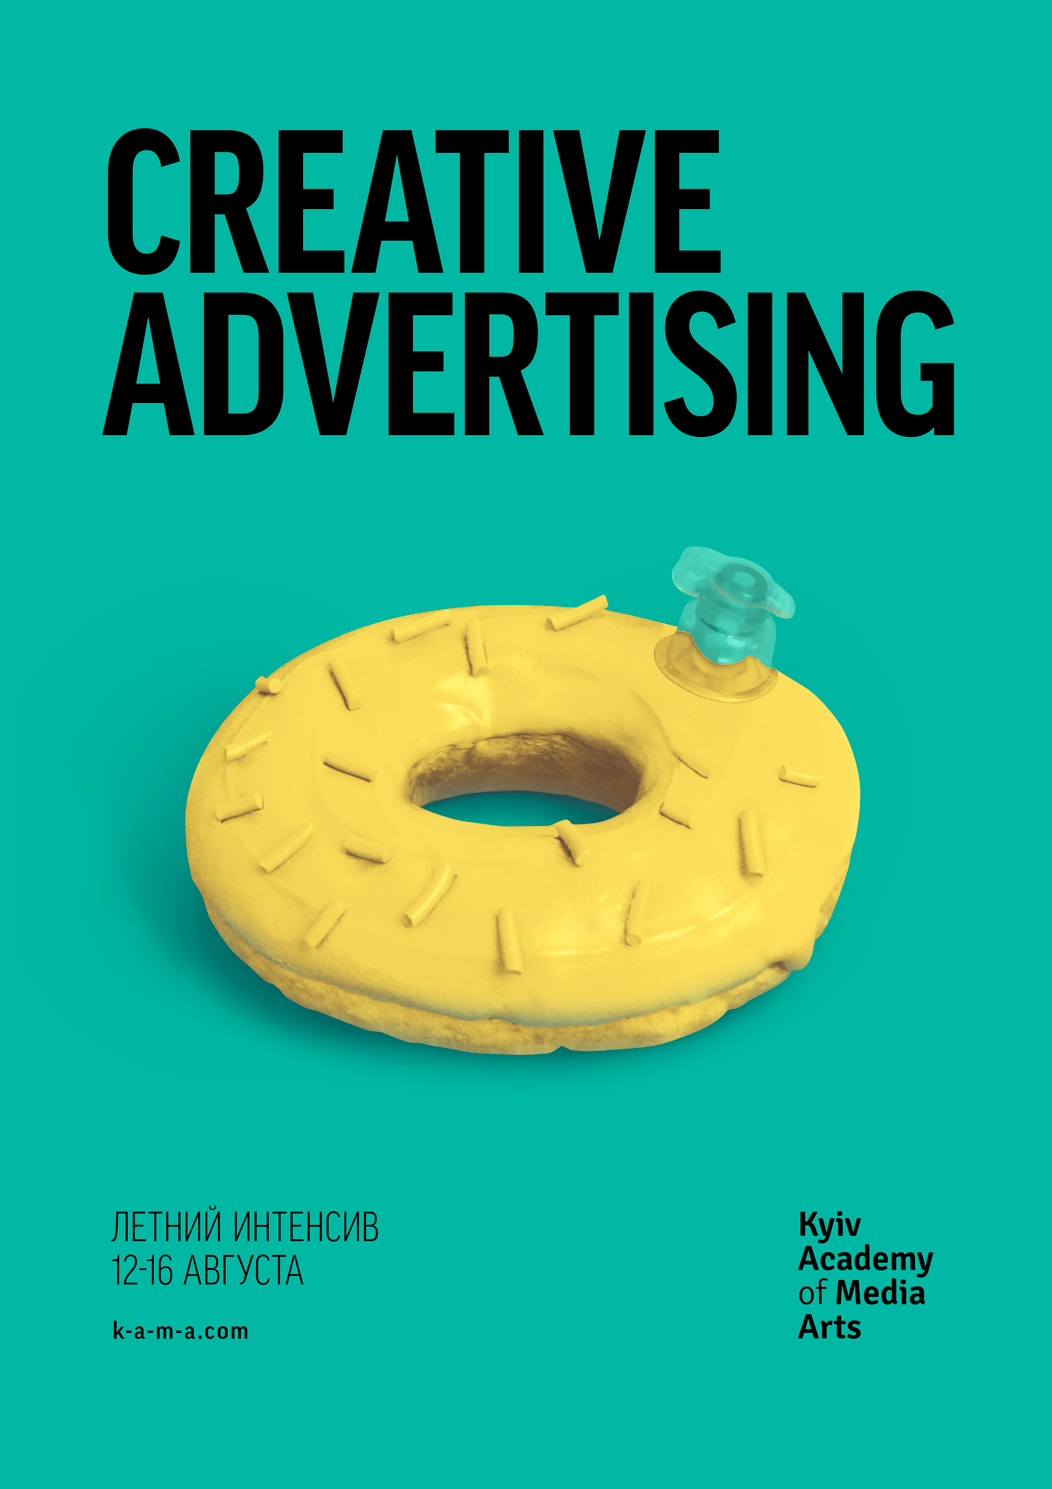 CREATIVE-ADVERTISING-WEB (1).png